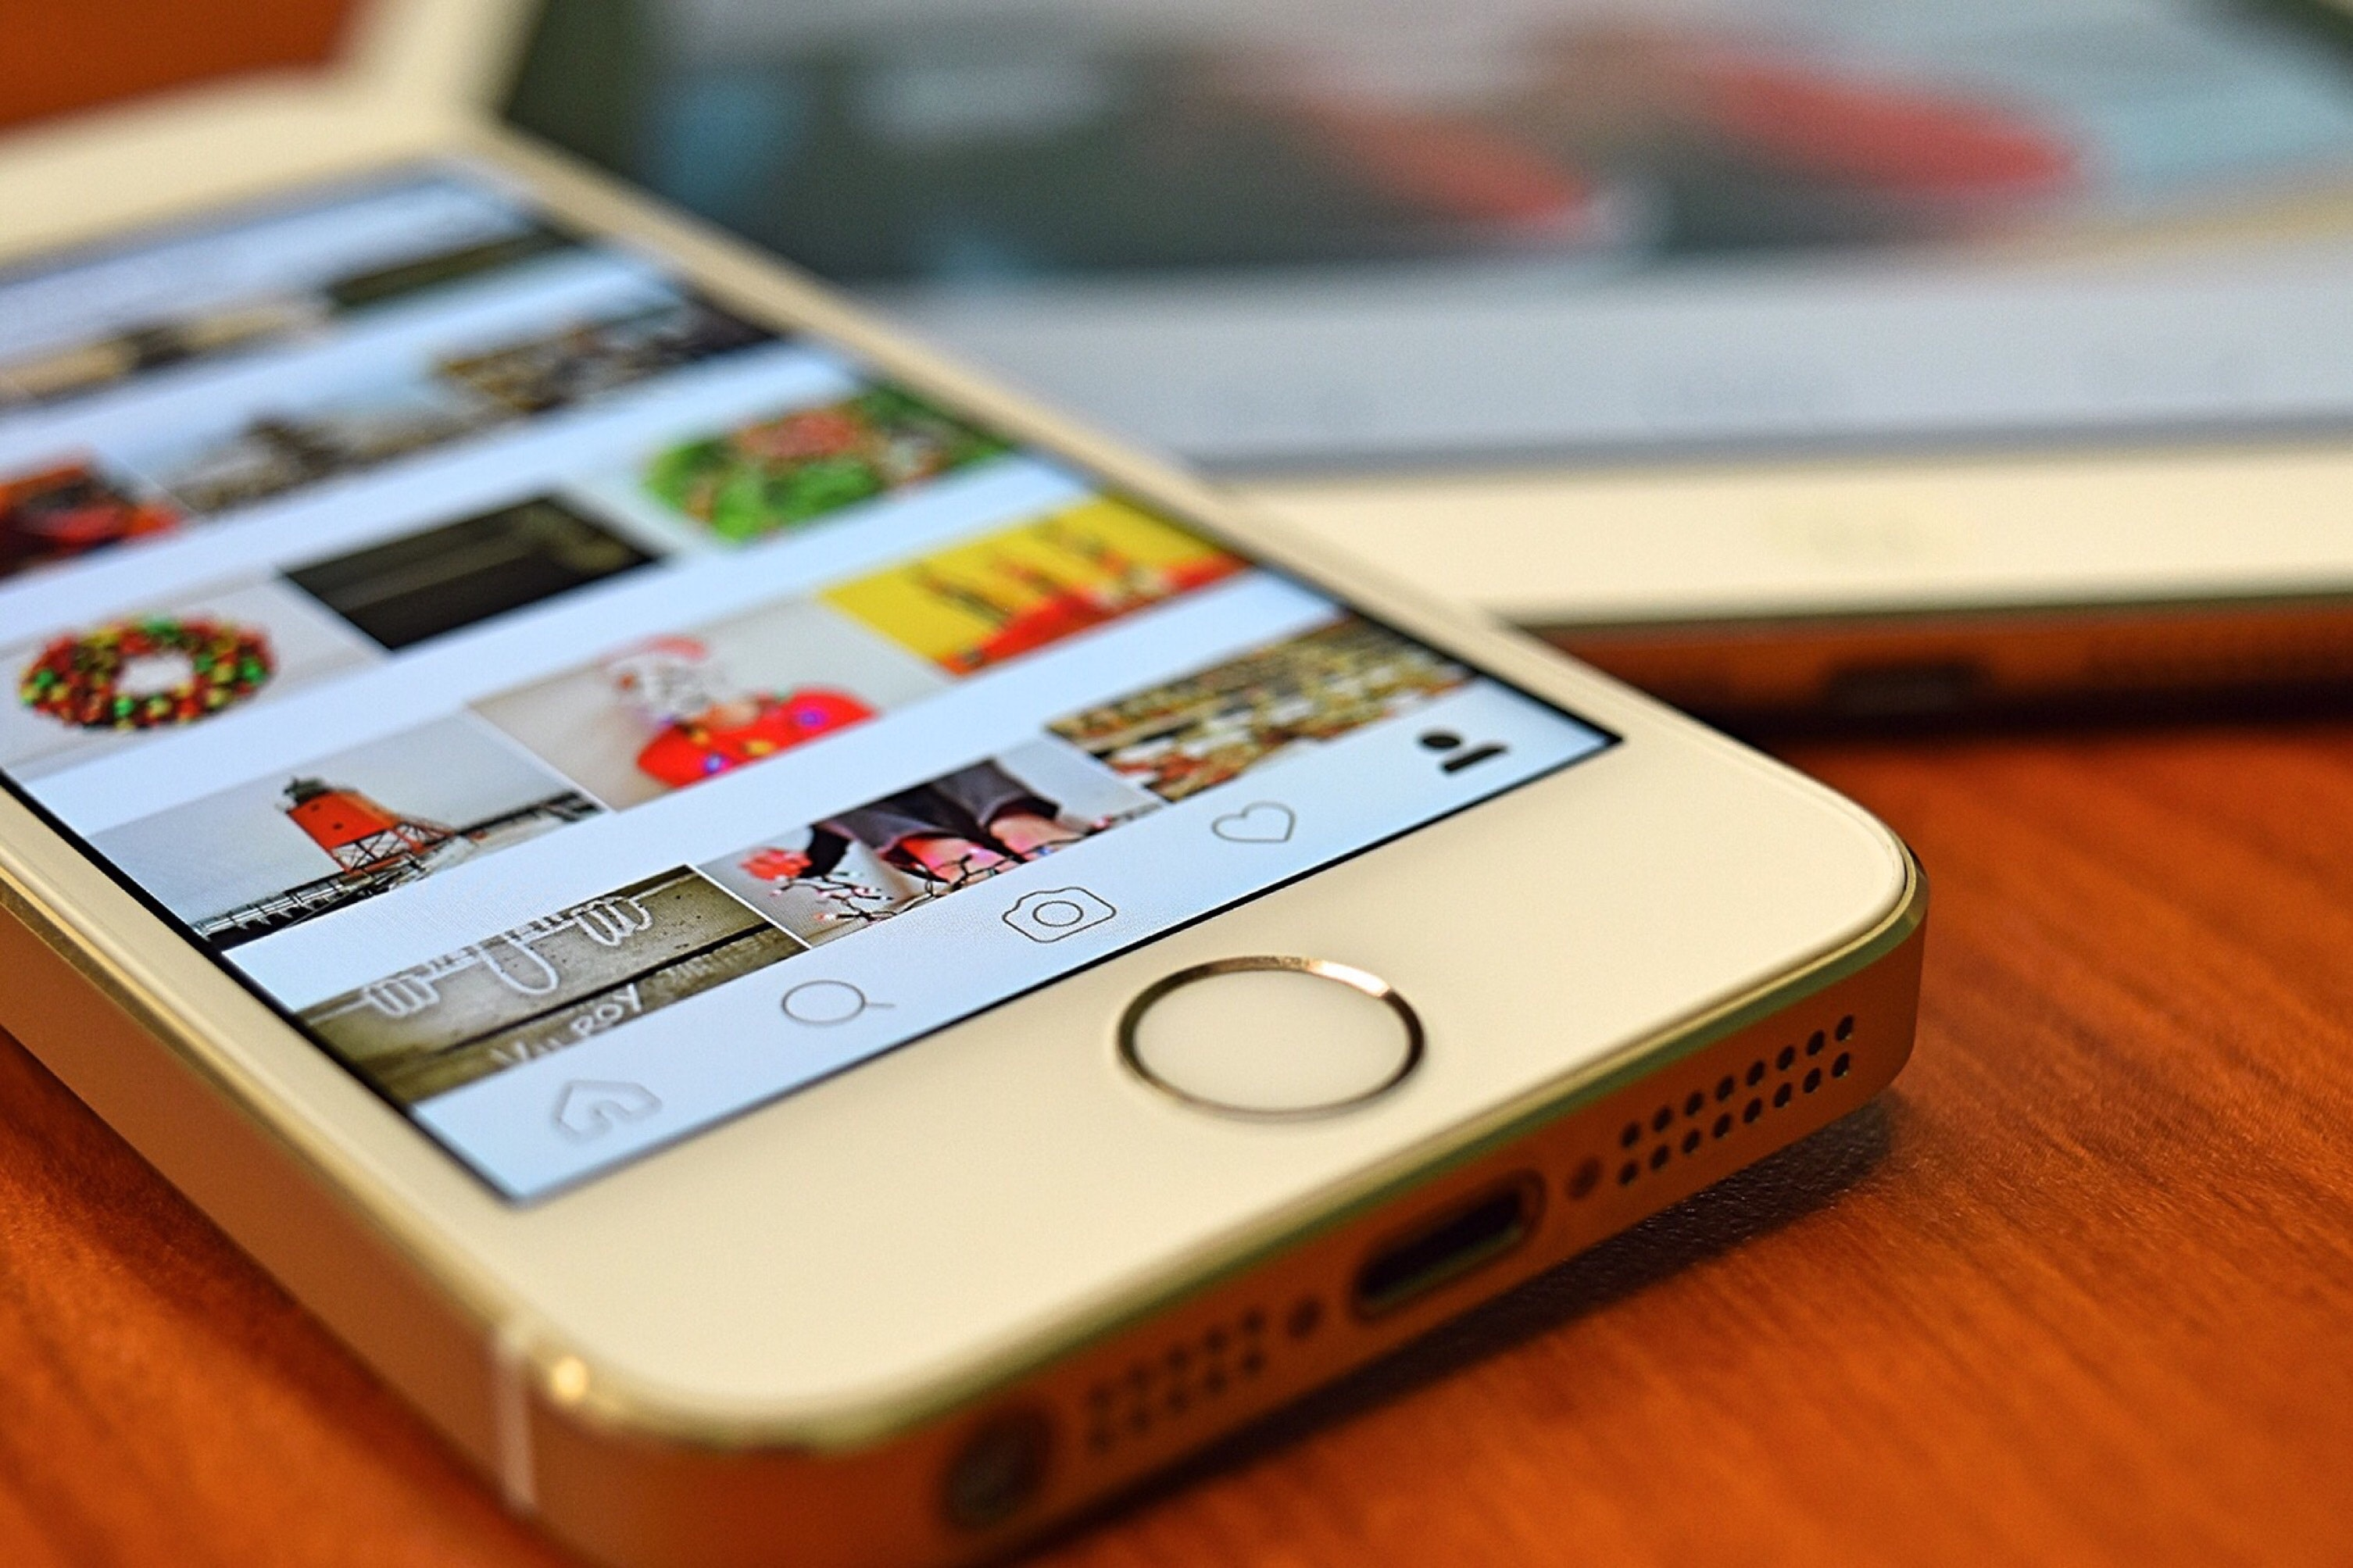 Silver iphone 5s showing instagram photo